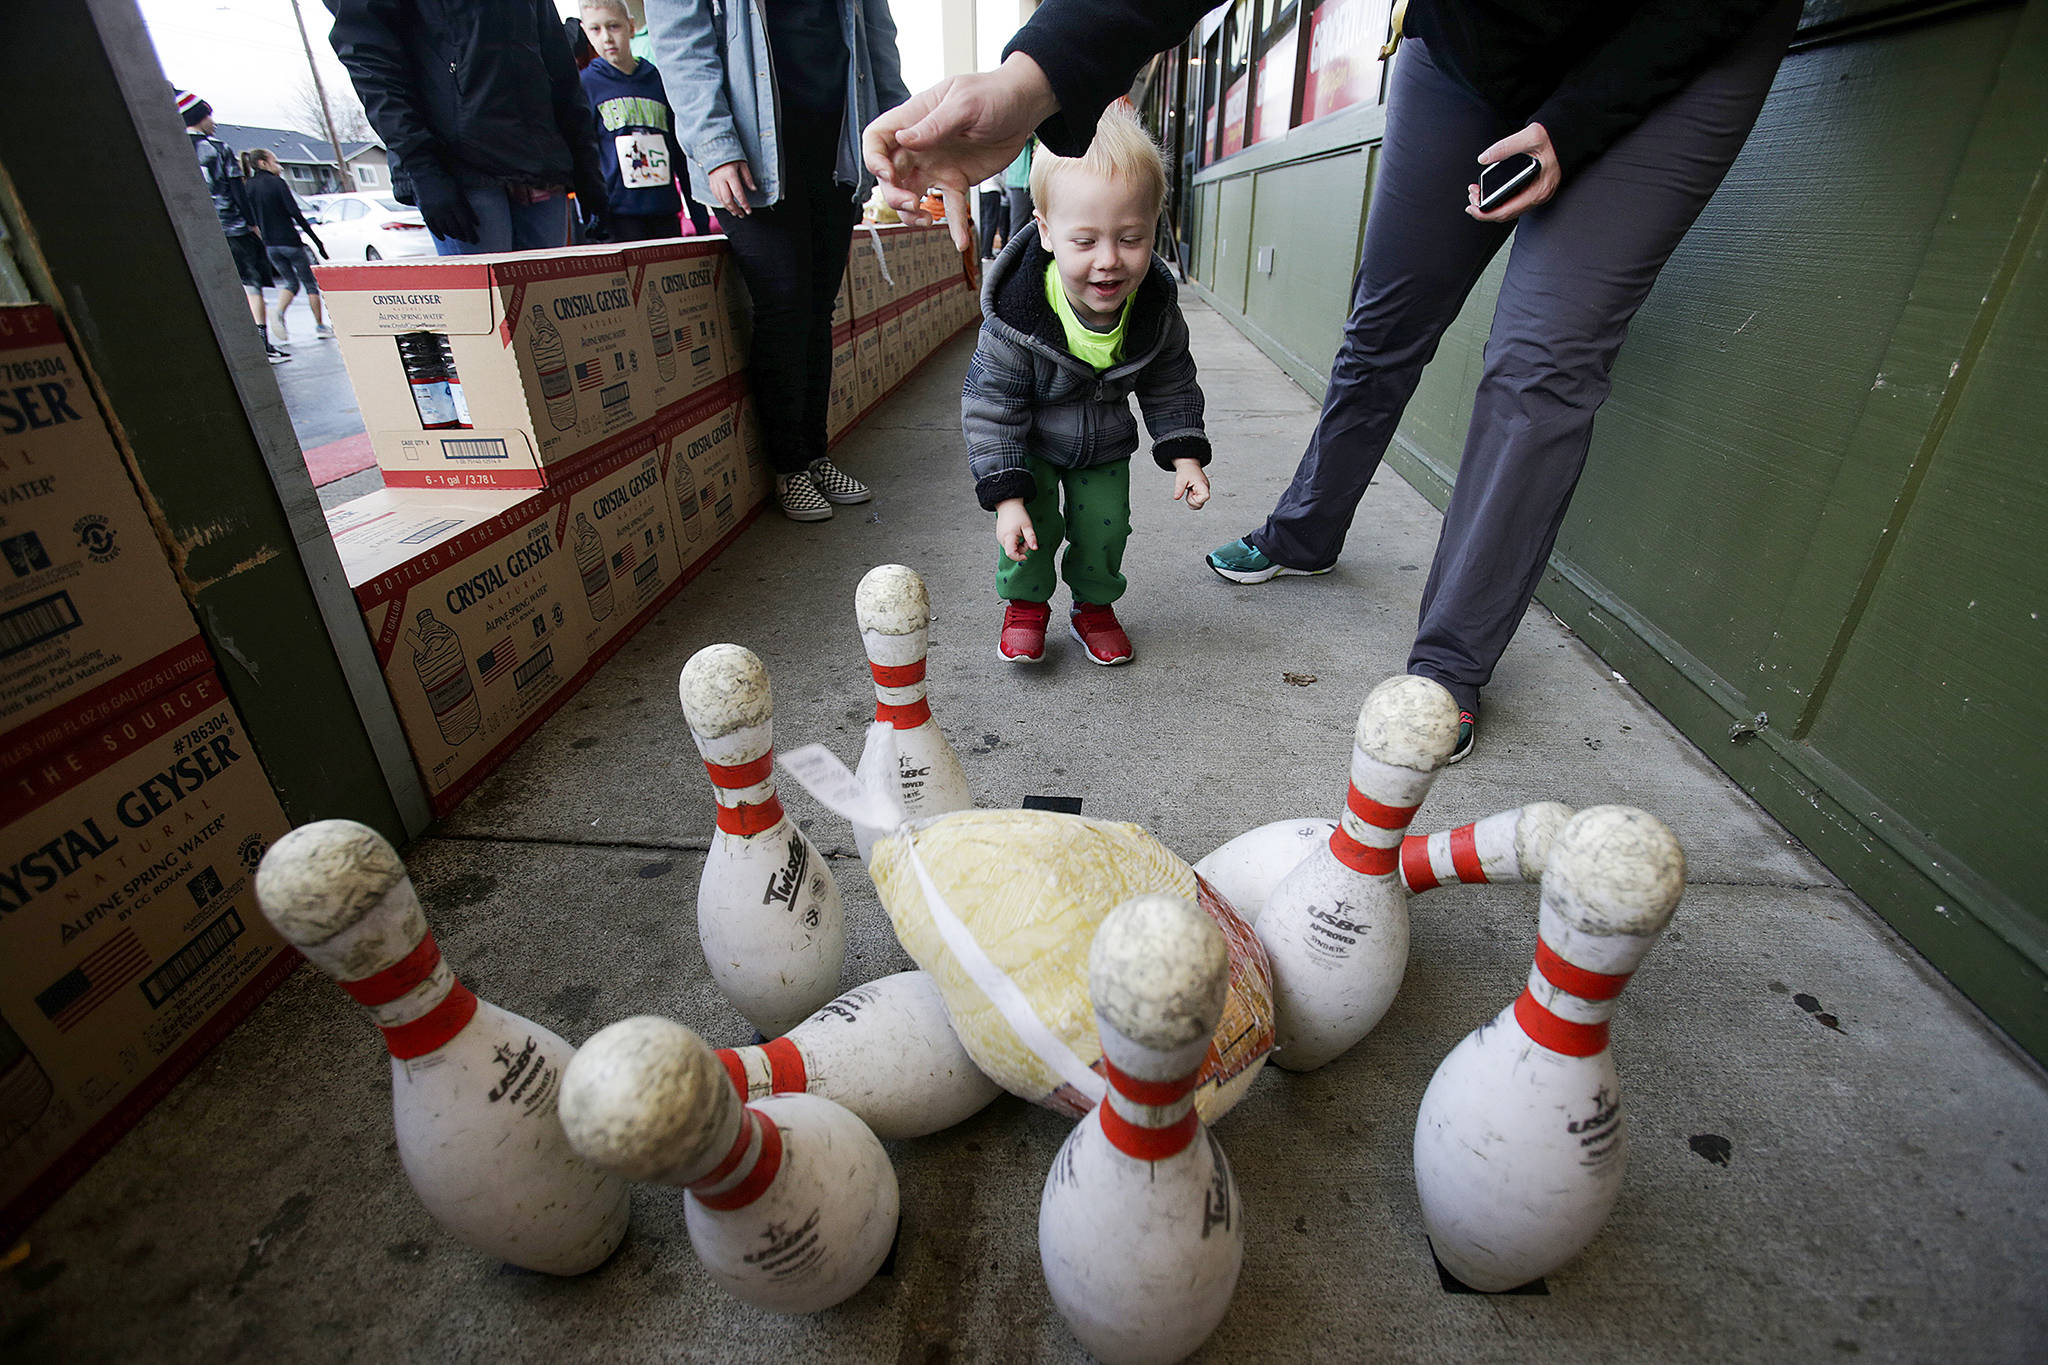 "Liam Mourning, 6, gets a hand at Turkey bowling from his mother Shelly outside Grocery Outlet at the <a href=""https://www.heraldnet.com/news/hundreds-run-through-arlington-before-thanksgiving-dinner/"" target=""_blank"">Turkey Trot 5K</a> on Nov. 22 in Arlington. (Andy Bronson / The Herald)"